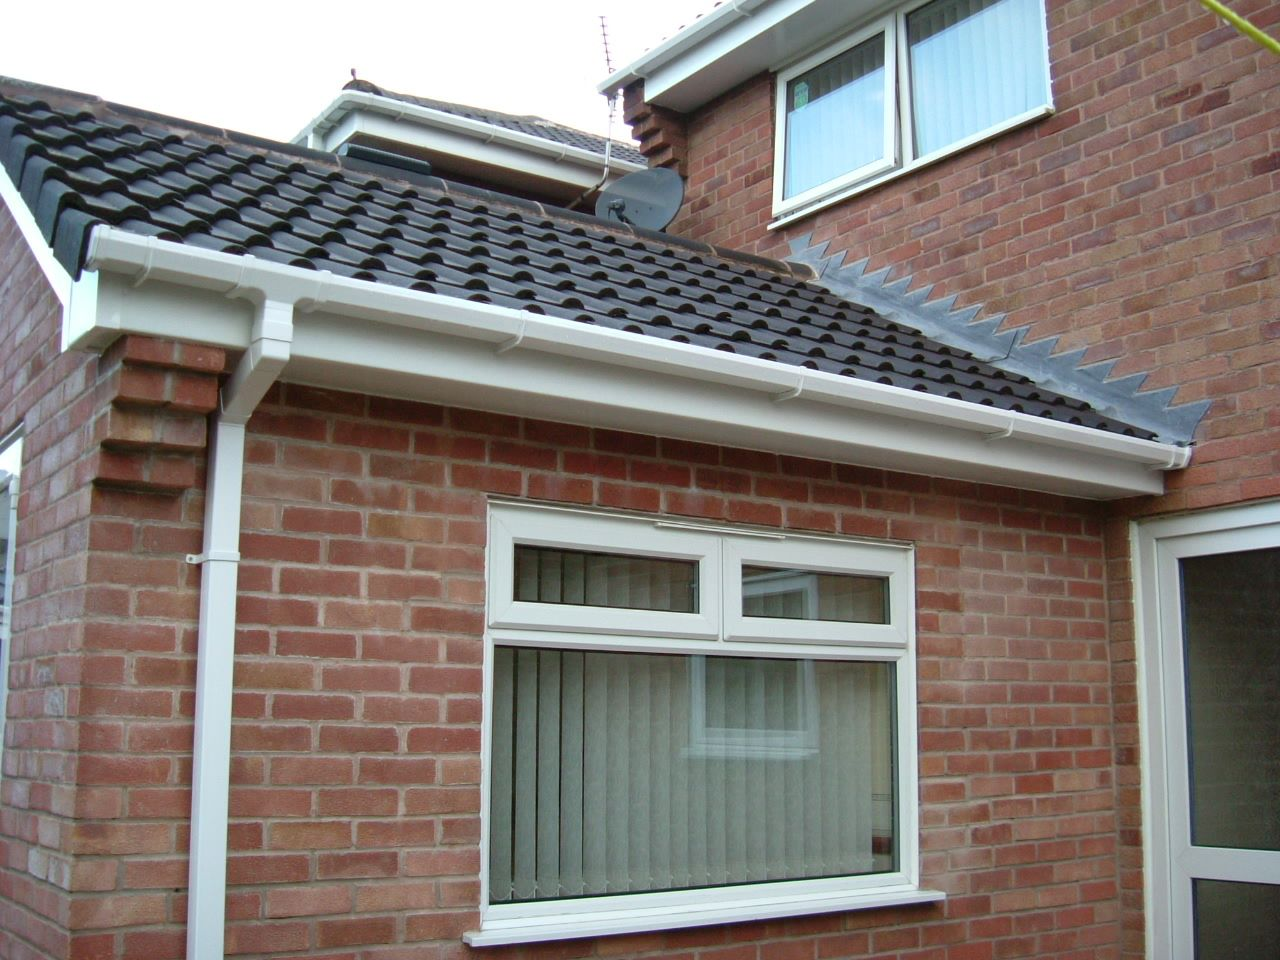 Soffits-Fascias-and-Guttering-in-white-upvc.jpg